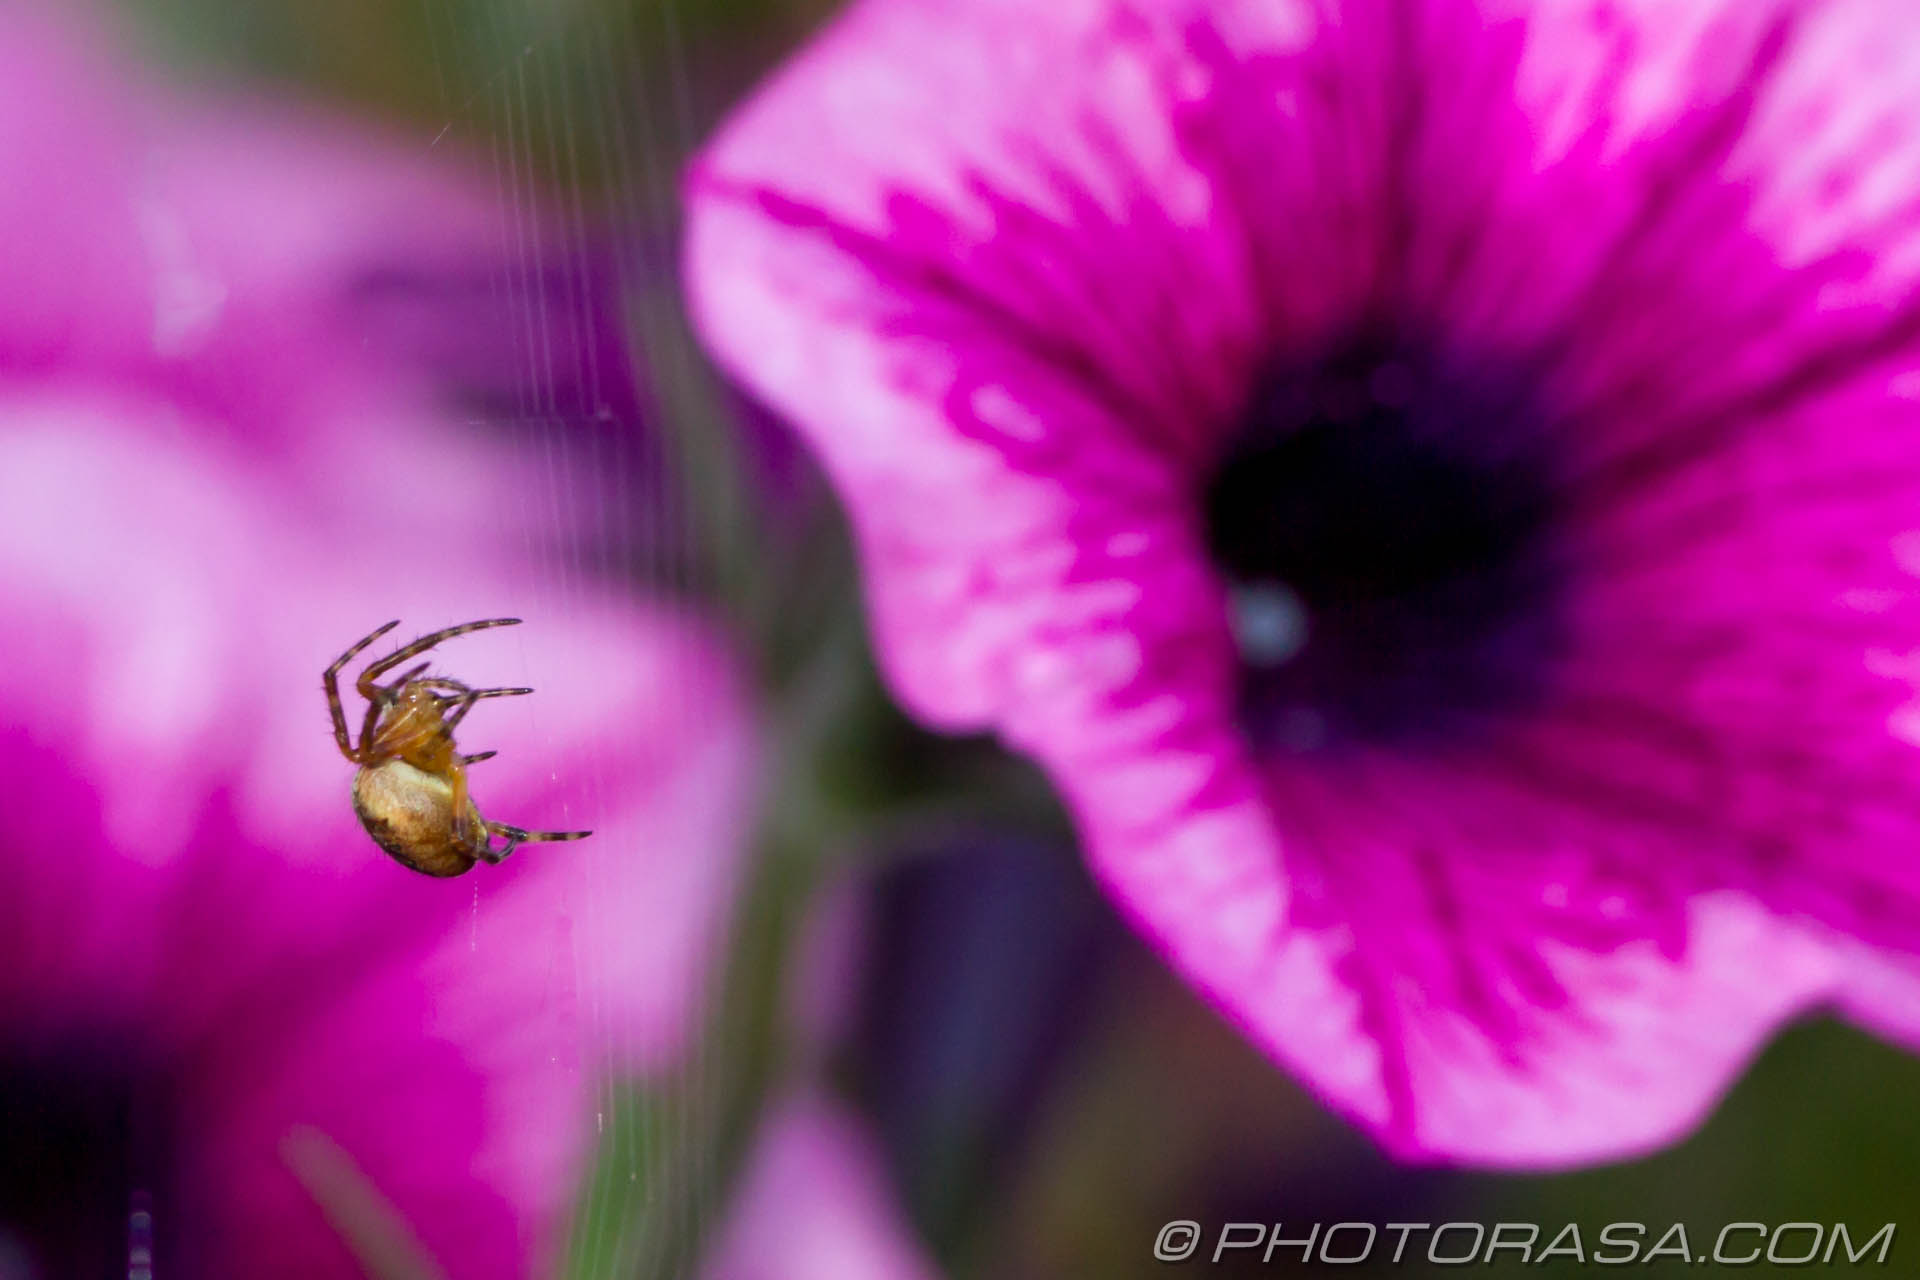 http://photorasa.com/spider-petunias/waiting-for-lunch/